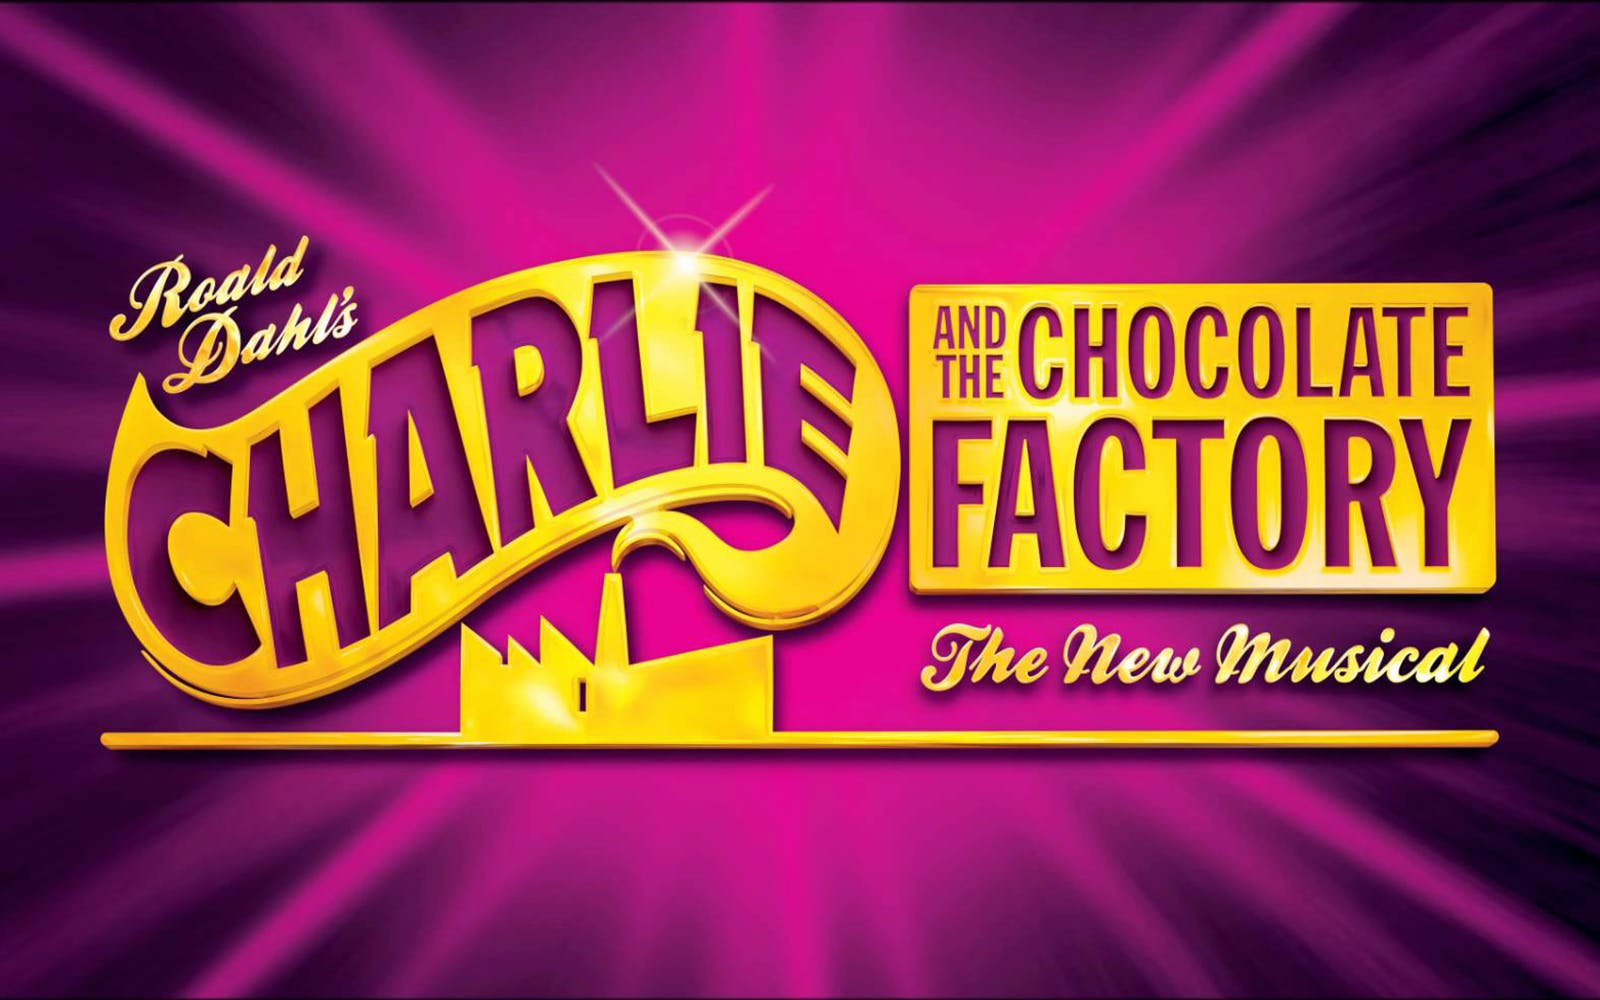 Best Broadway Shows - January 2018 - Charlie & the Chocolate Factory